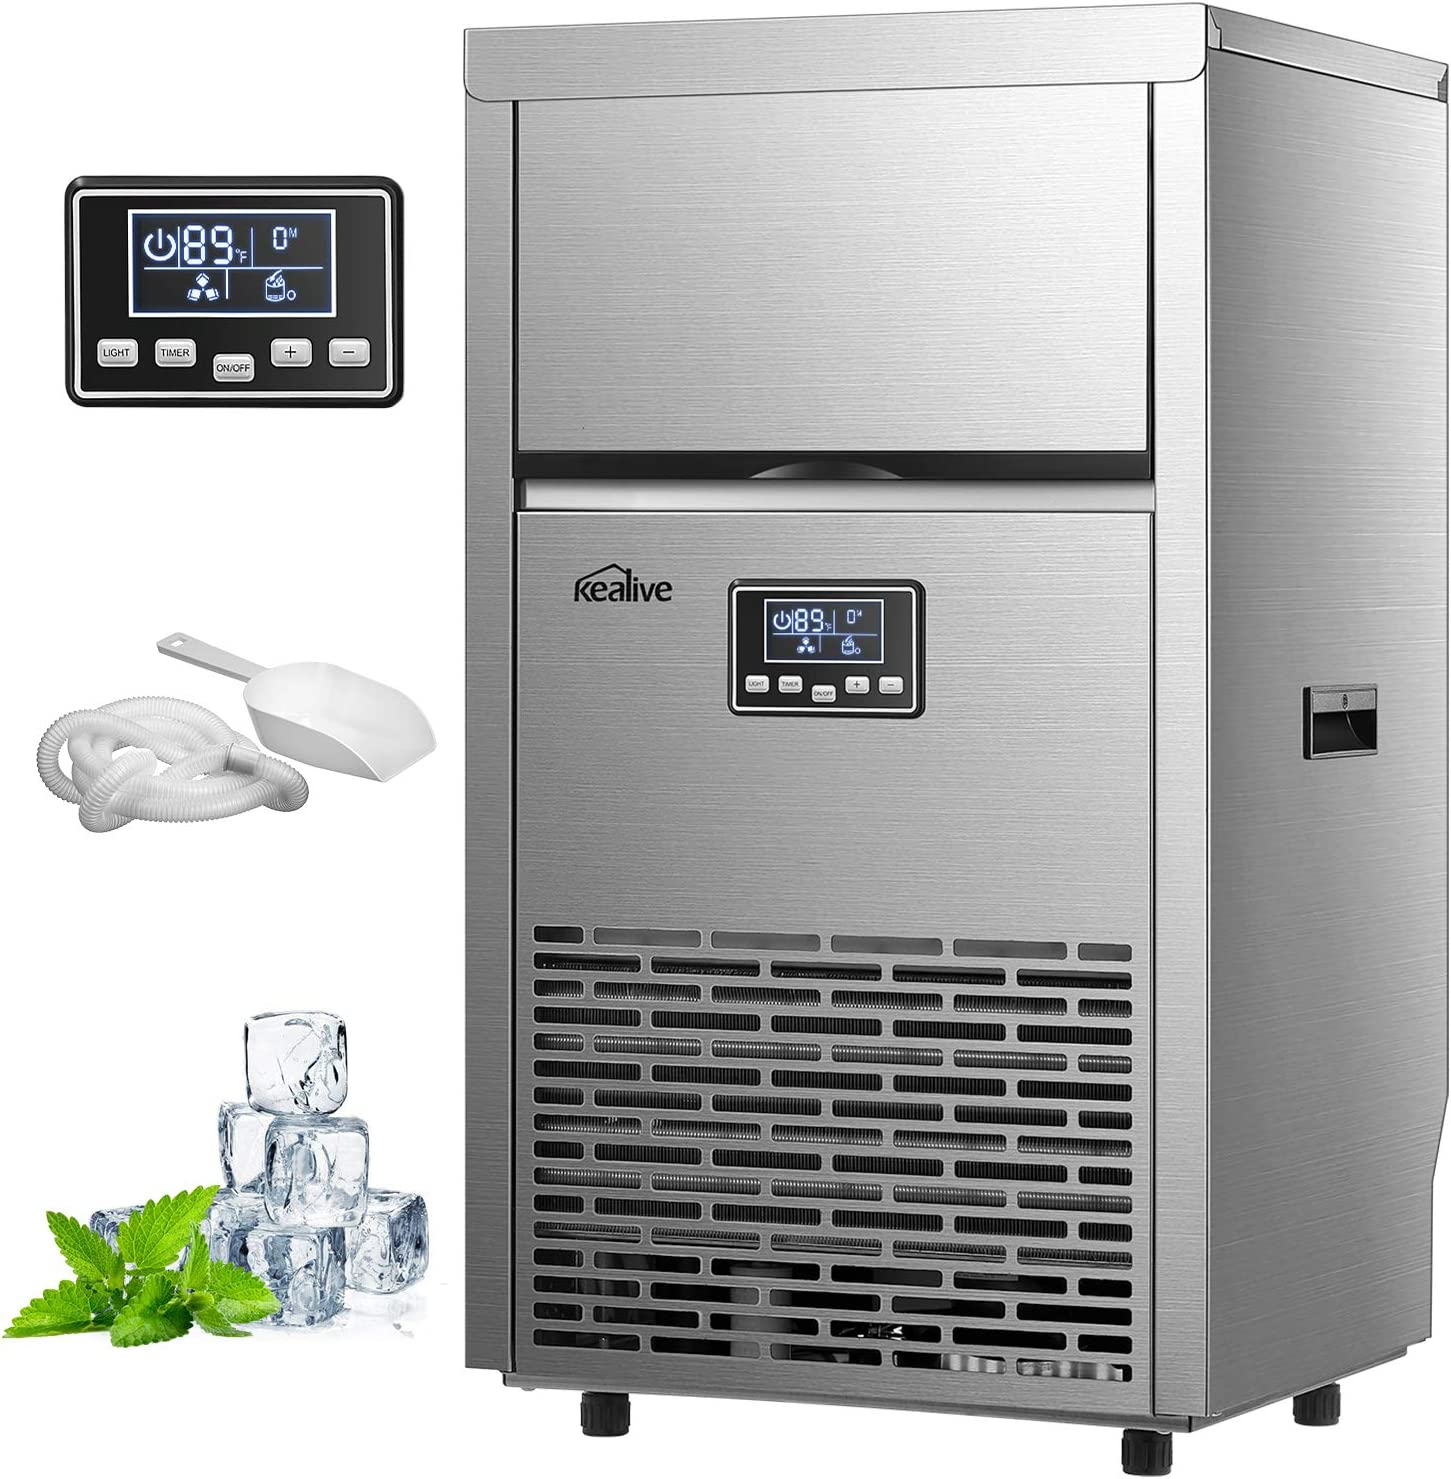 Kealive Commercial Ice Maker 99lbs in 24h with 33lbs Storage Capacity Freestanding Stainless SteelIce Cube Machine, Auto Clean with Scoop and Connection Hoses for Shop Bars Home Supermarket, Sliver